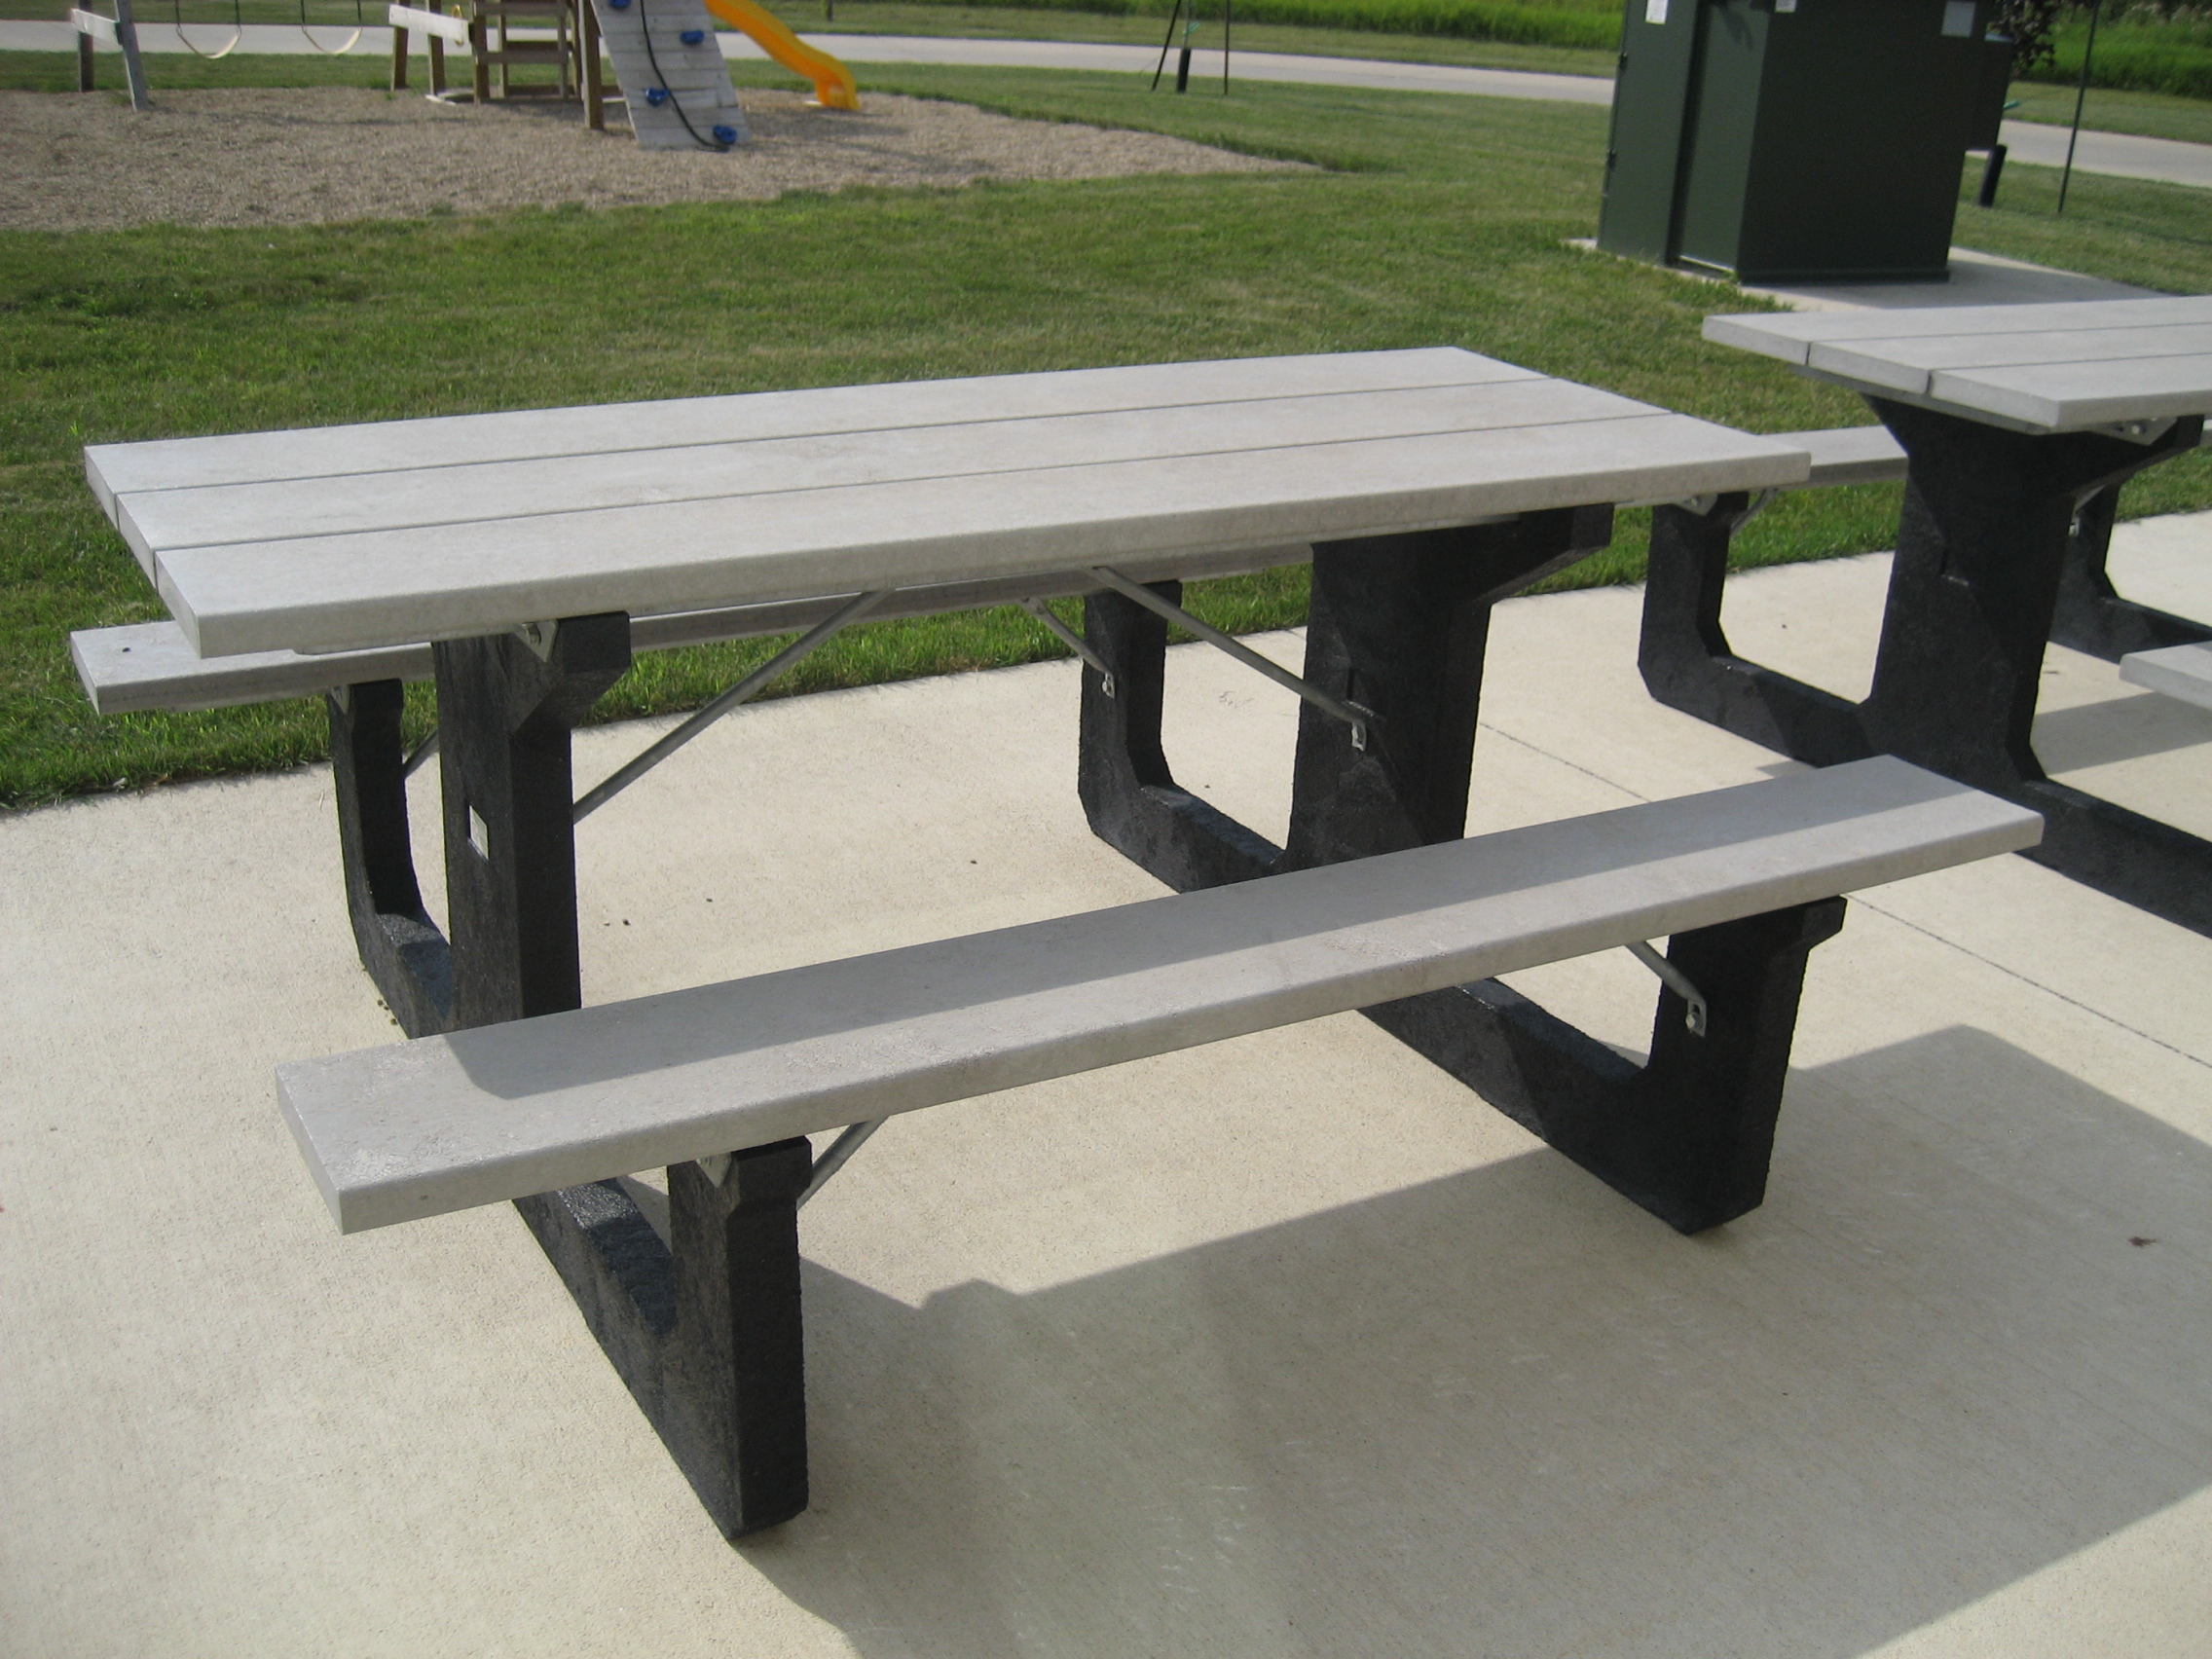 product weve is plaque hyde plate the best on park benches year engraved bronze this bench launched recycled plastic